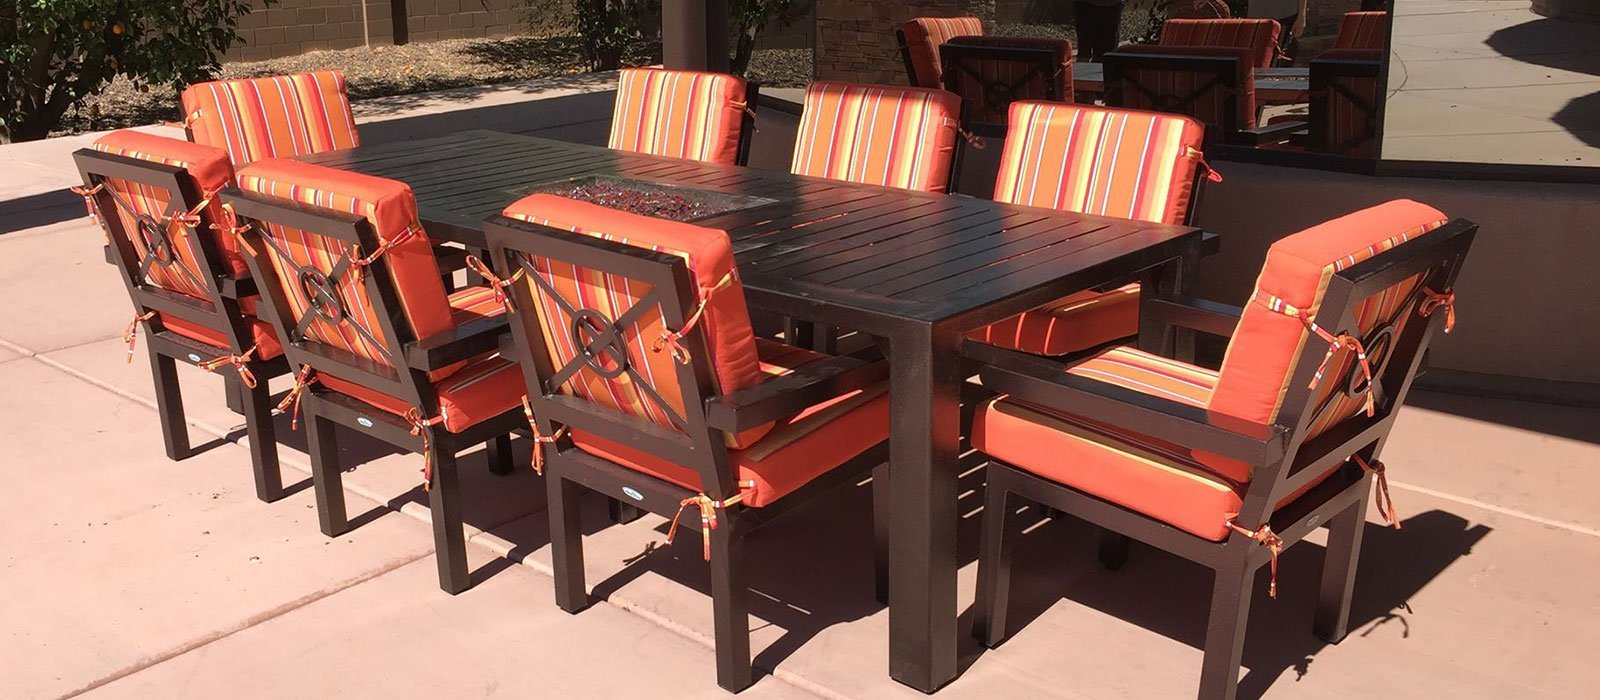 Beau Discover Our Wide Selection Of Patio Furniture